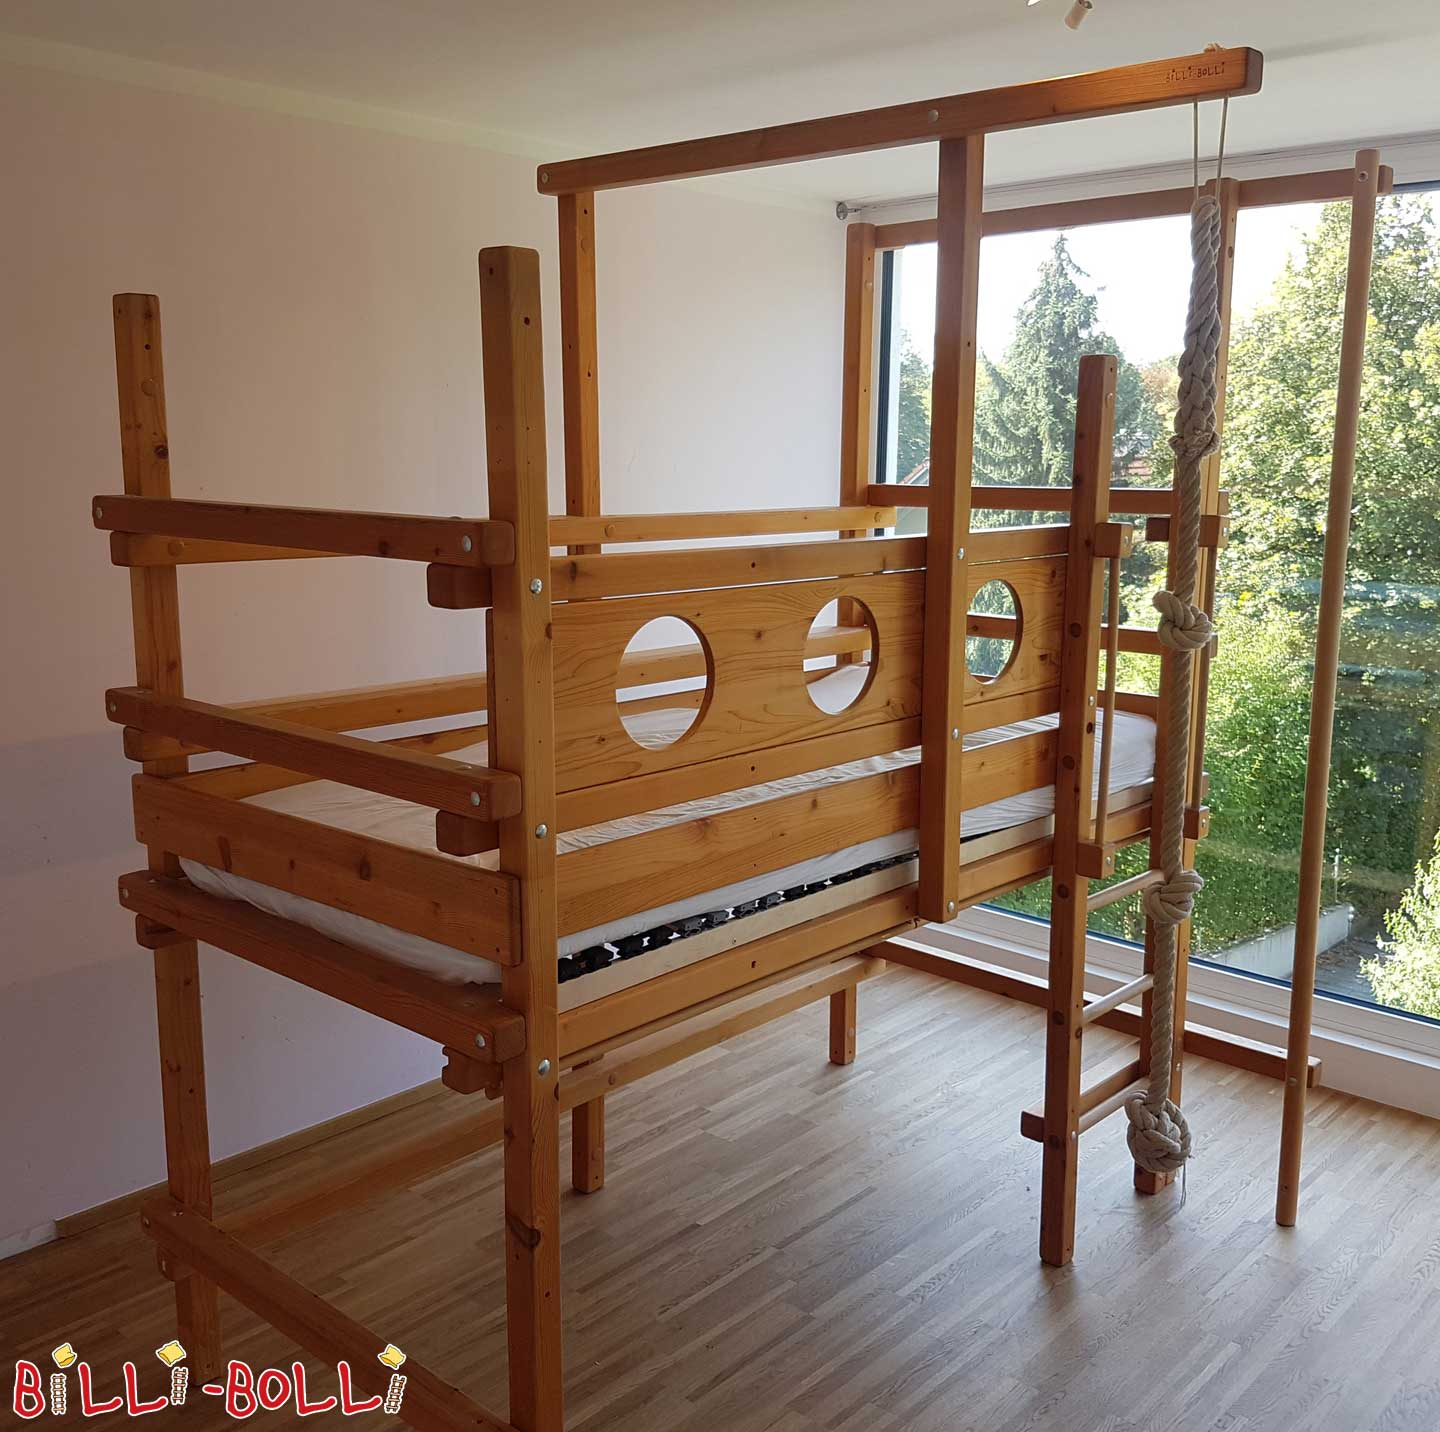 Growing high bed for seafarers (second hand loft bed)